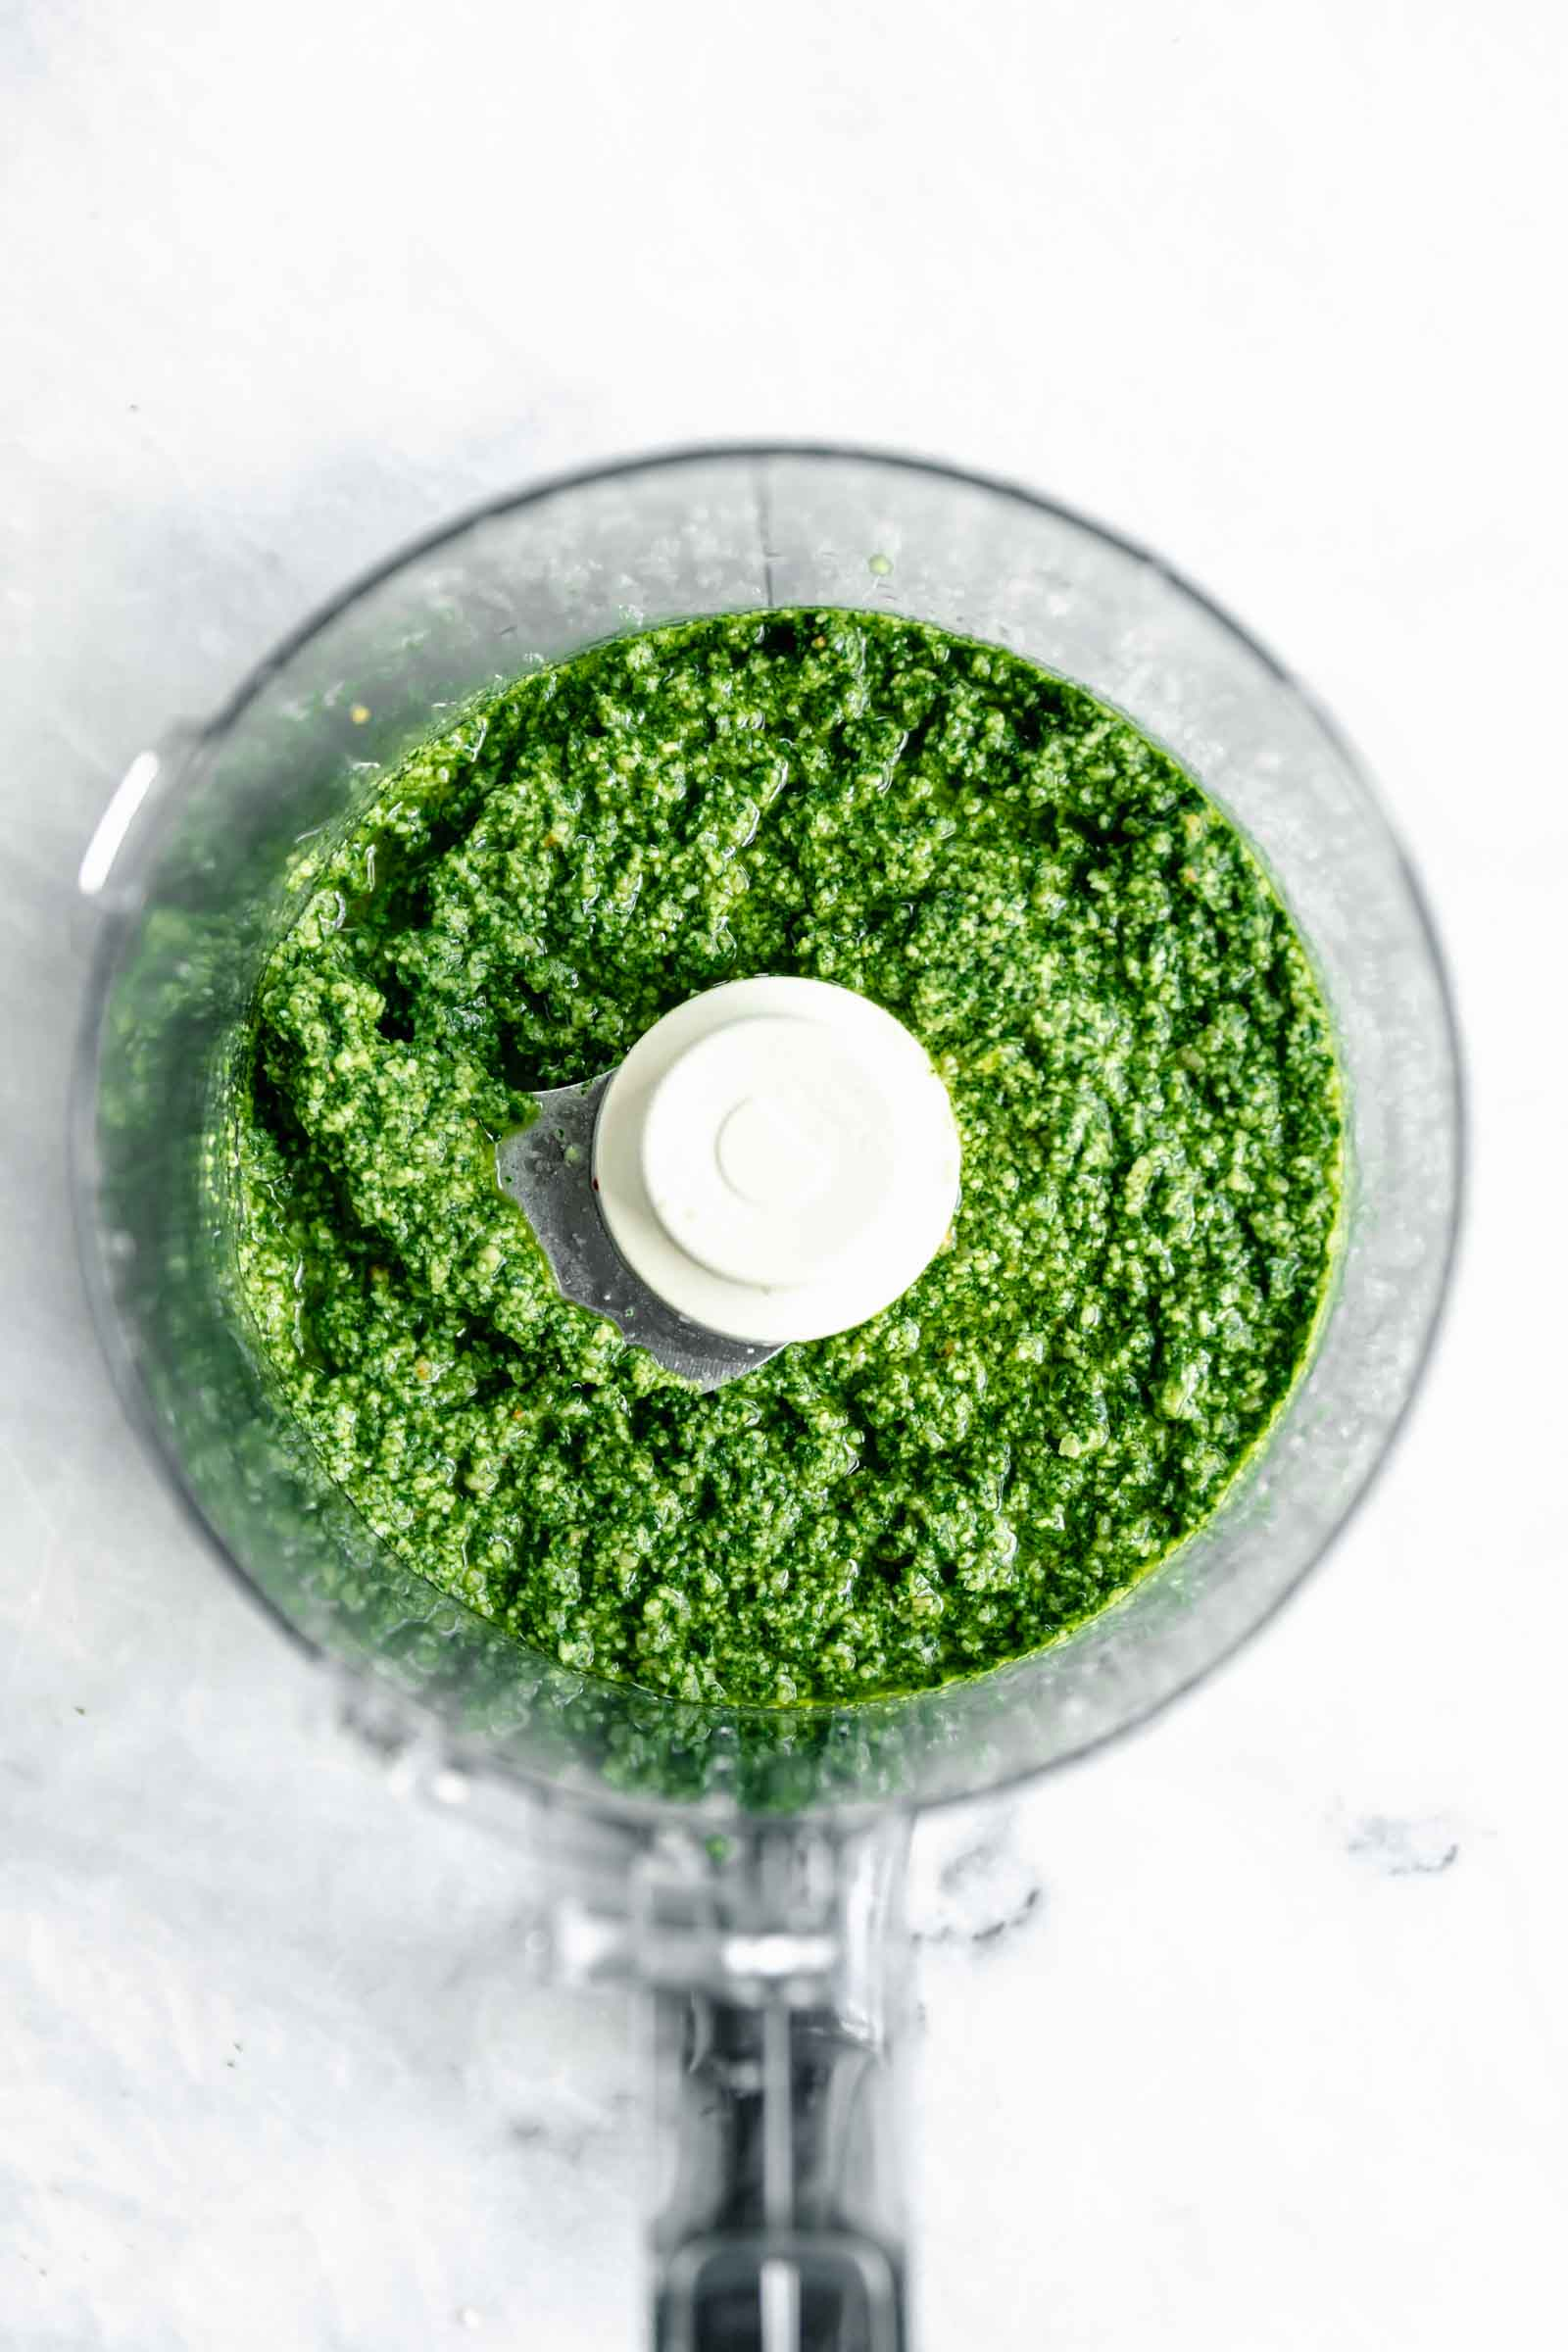 pesto process shot in food processor